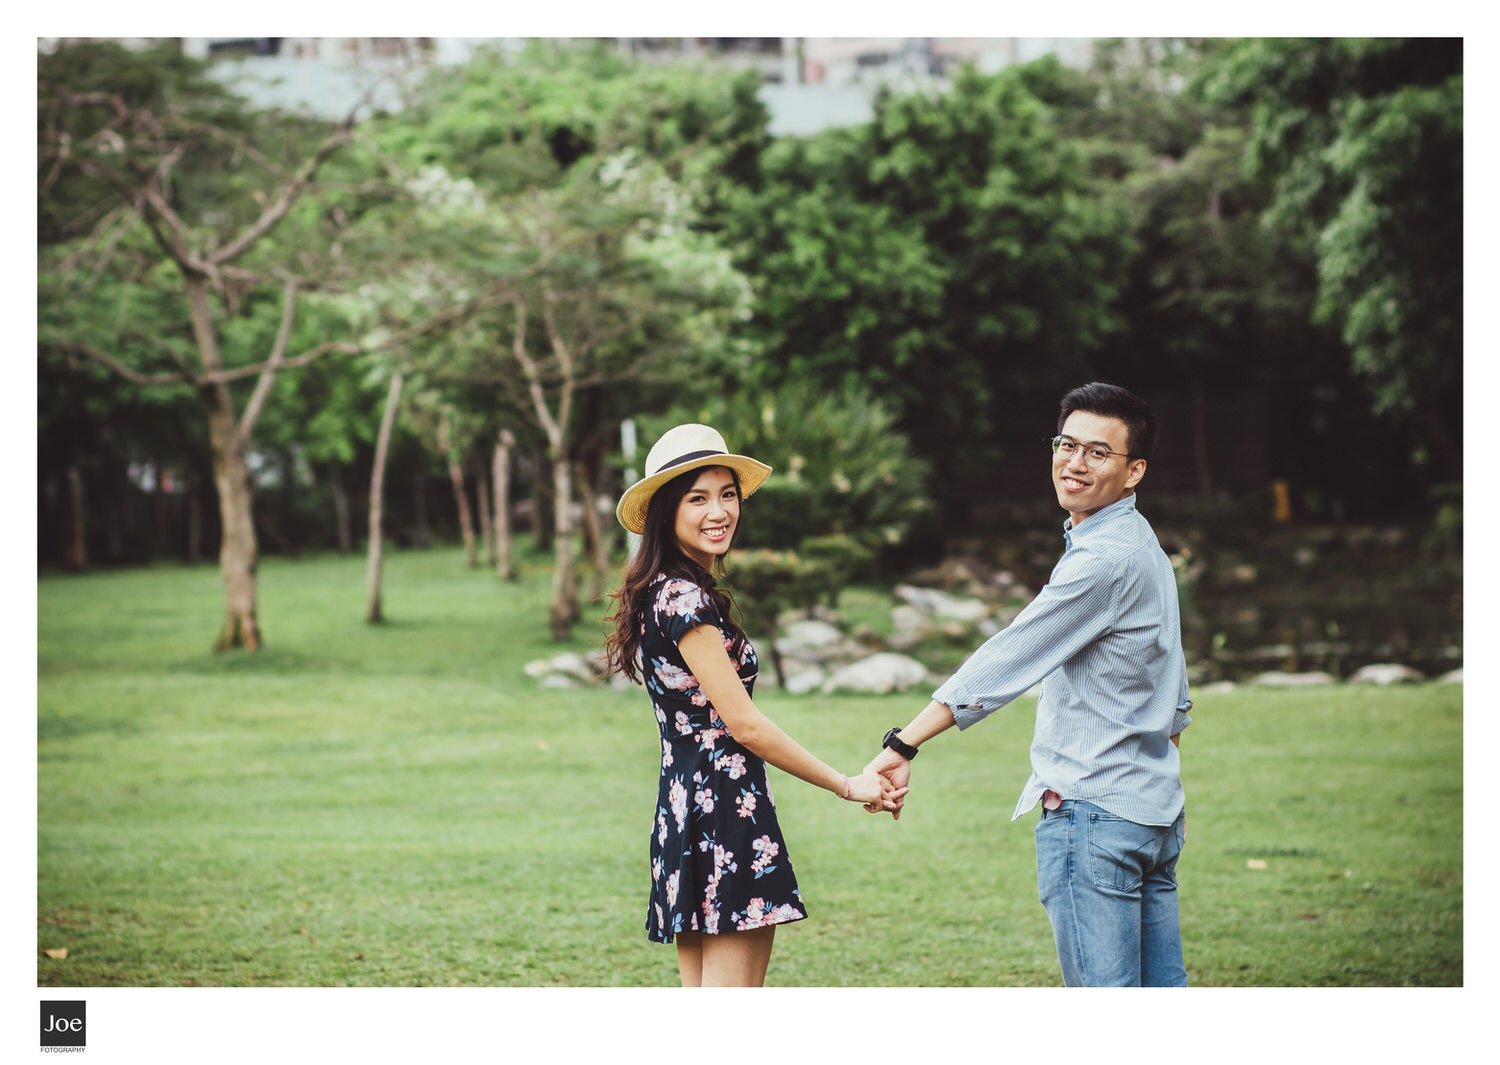 joe-fotography-engagement-photo-adrian-hilpy-52.jpg